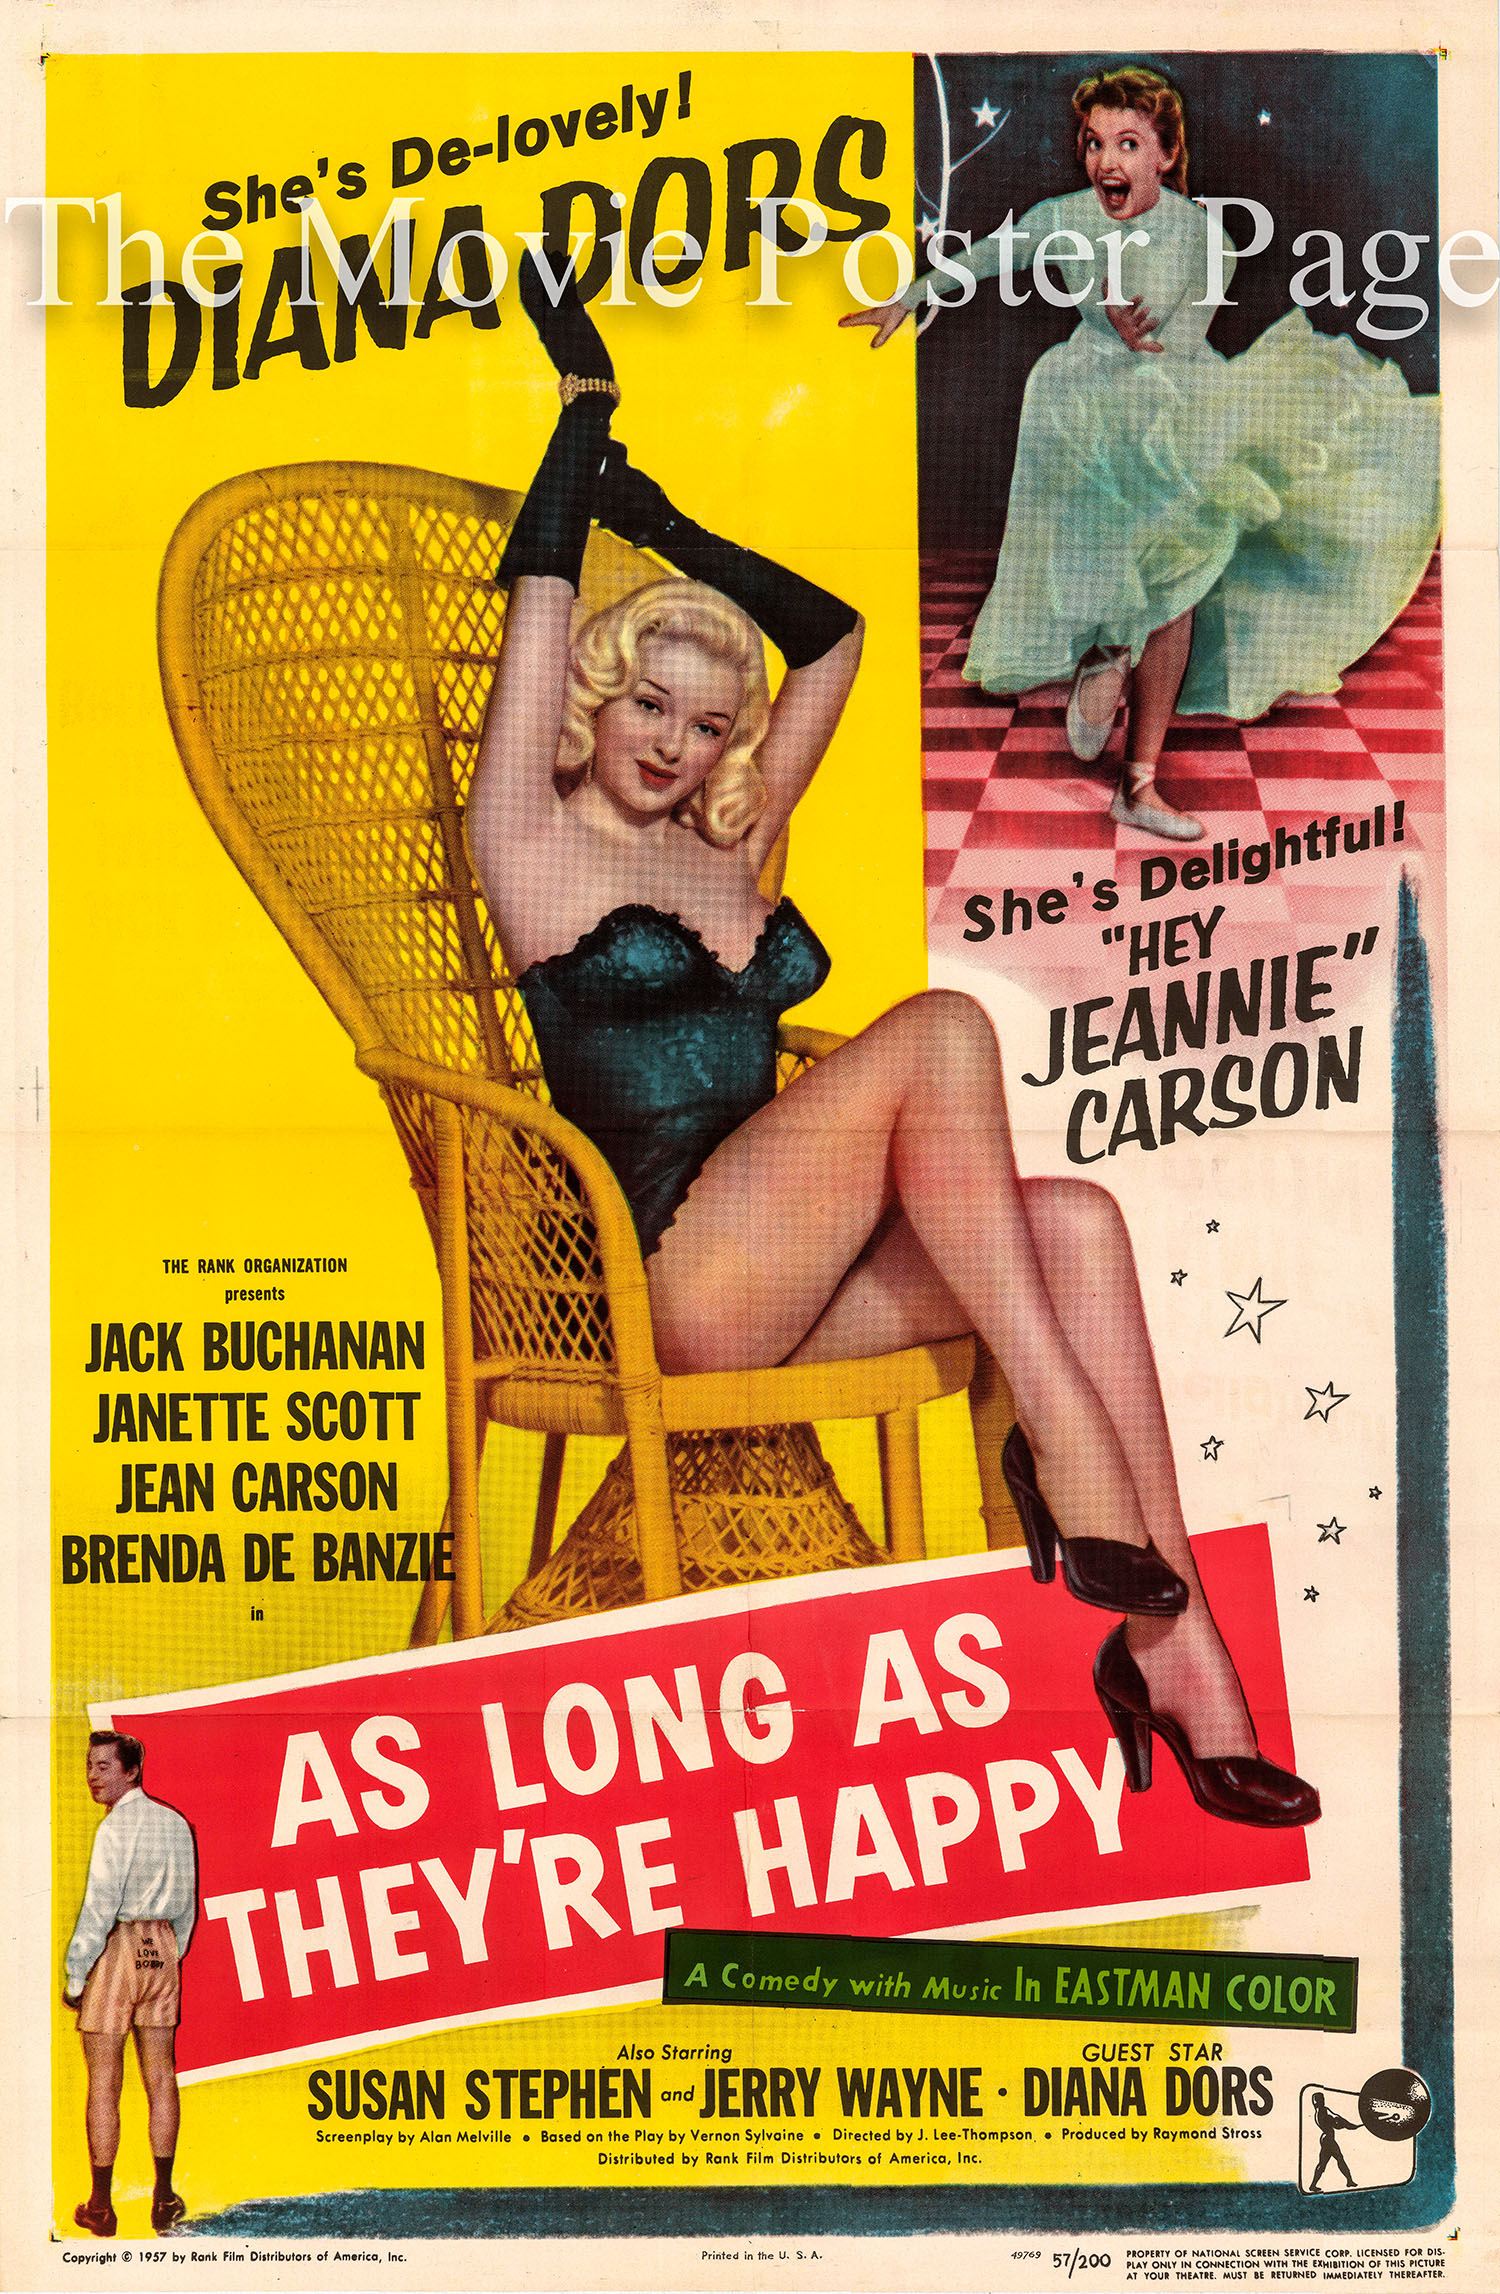 Pictured is a US one-sheet promotional poster for the 1955 J. Lee Thompson film As Long as They're Happy starring Diana Dors.